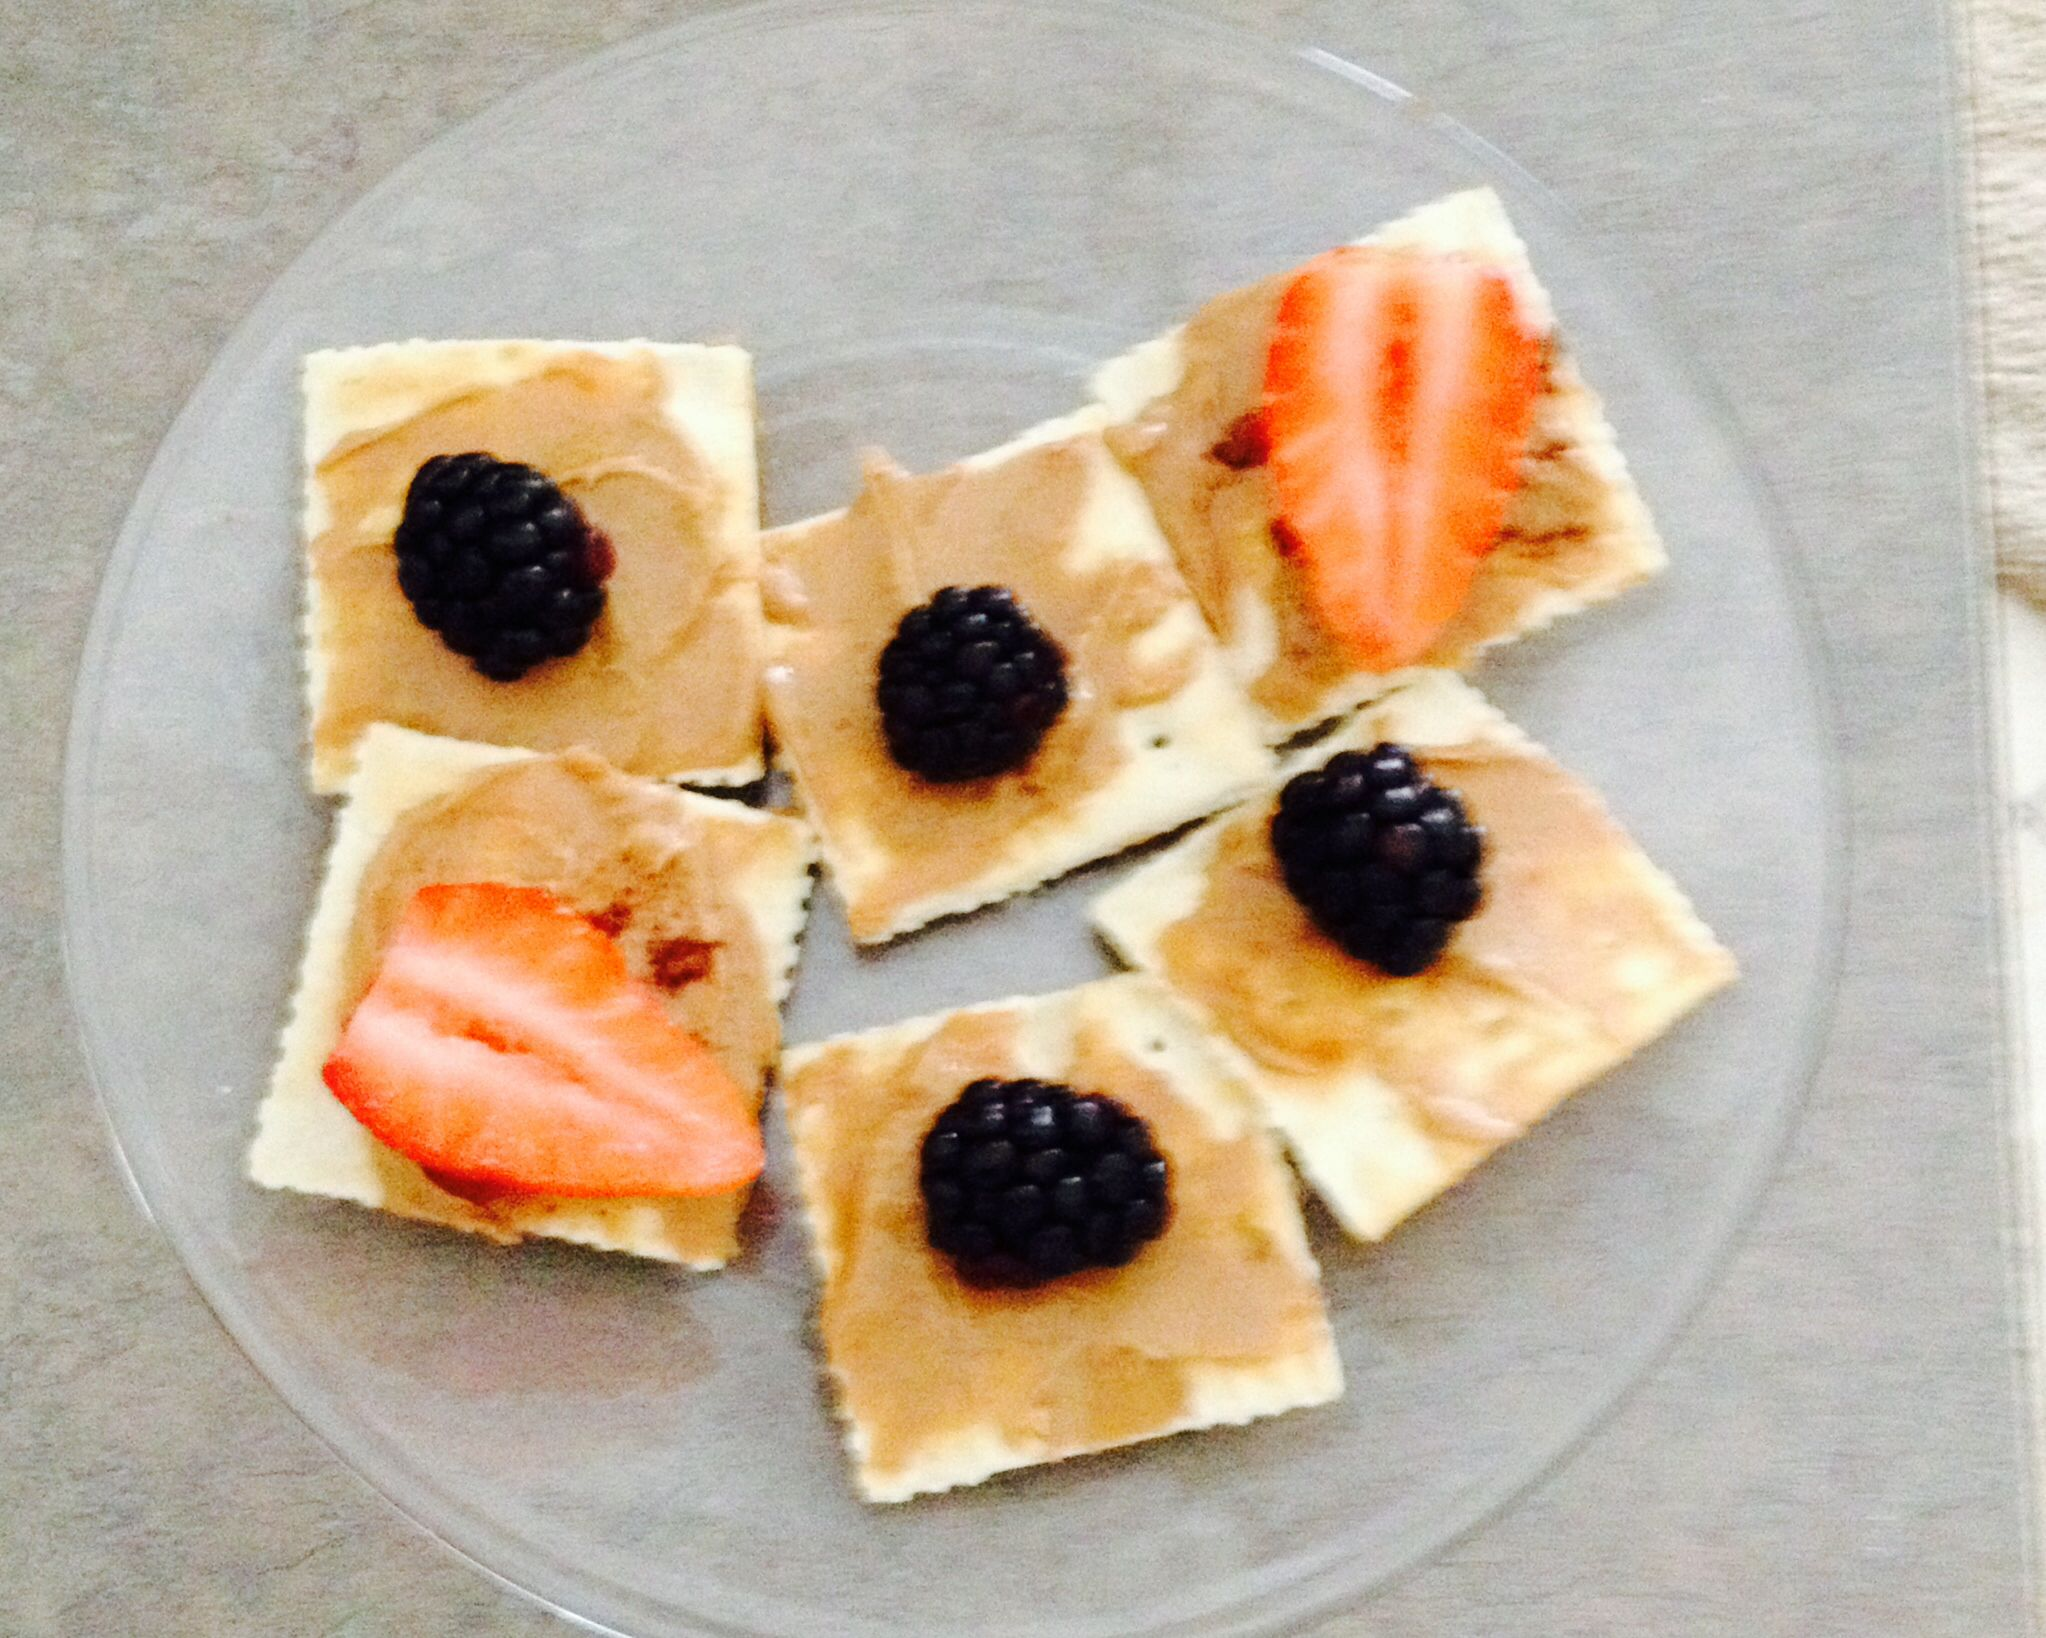 Peanut butter crackers instead of jelly use fresh fruit and add cinnamon for more flavor